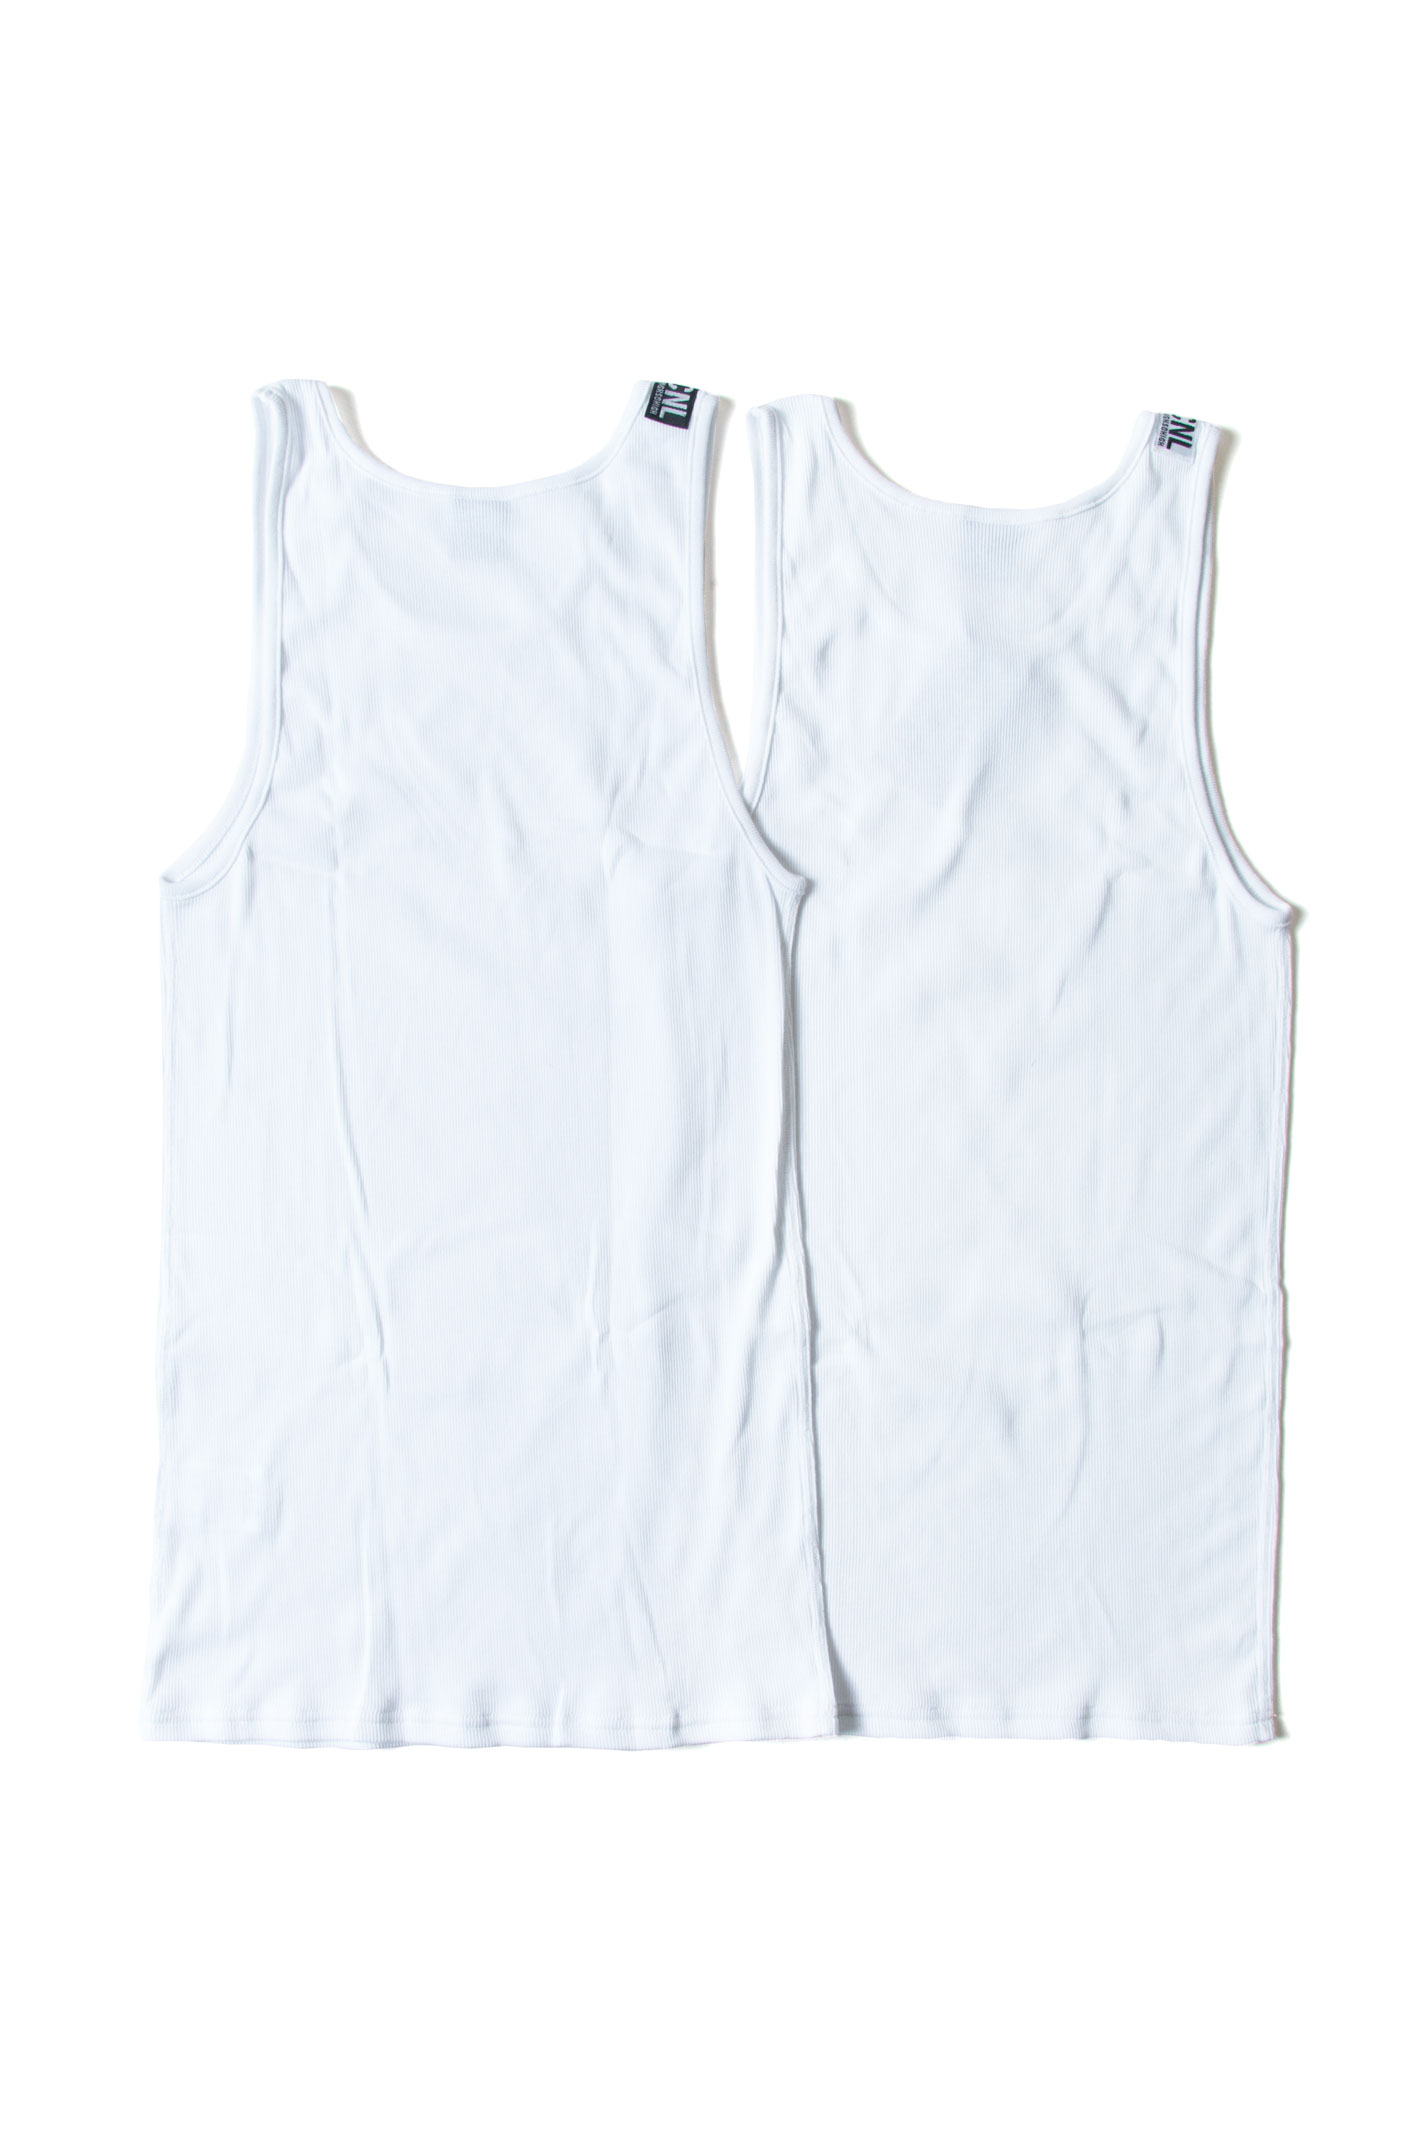 画像3: 【Back Channel】 2P TANK TOP